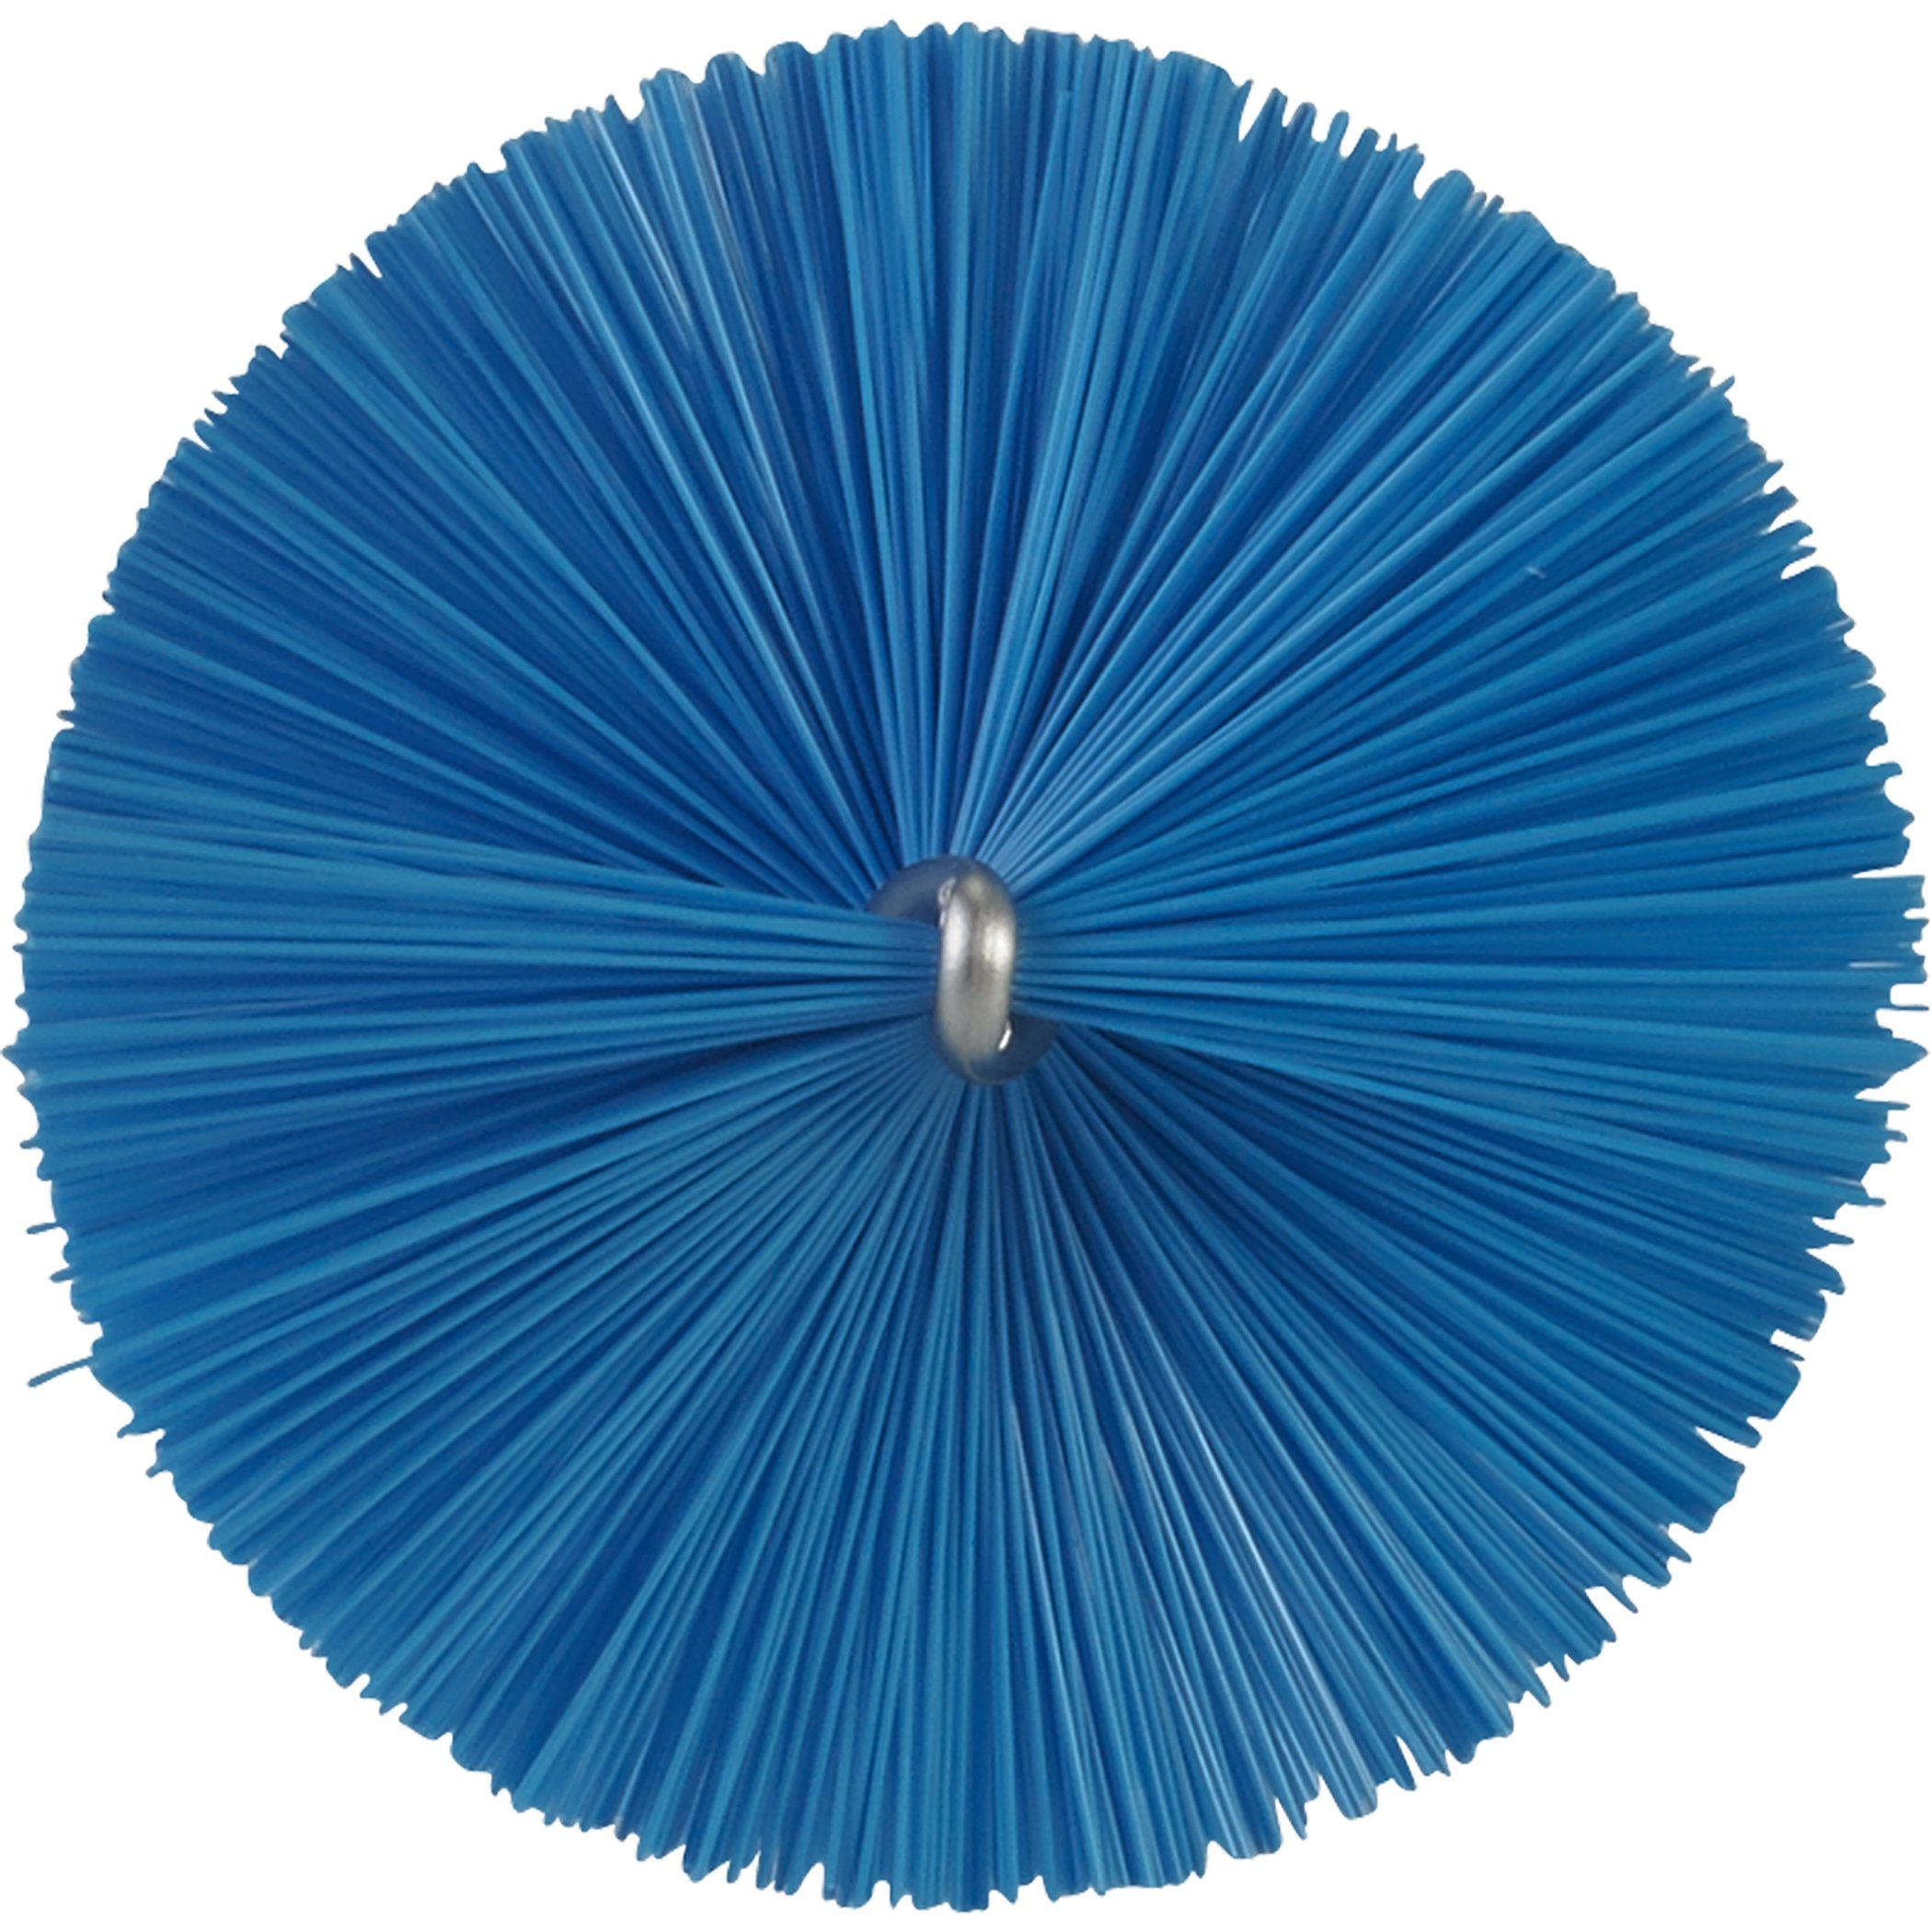 Vikan 53703 Soft Tube Brush, Polyester, 2-25/64'' x 20'' OAL, Blue